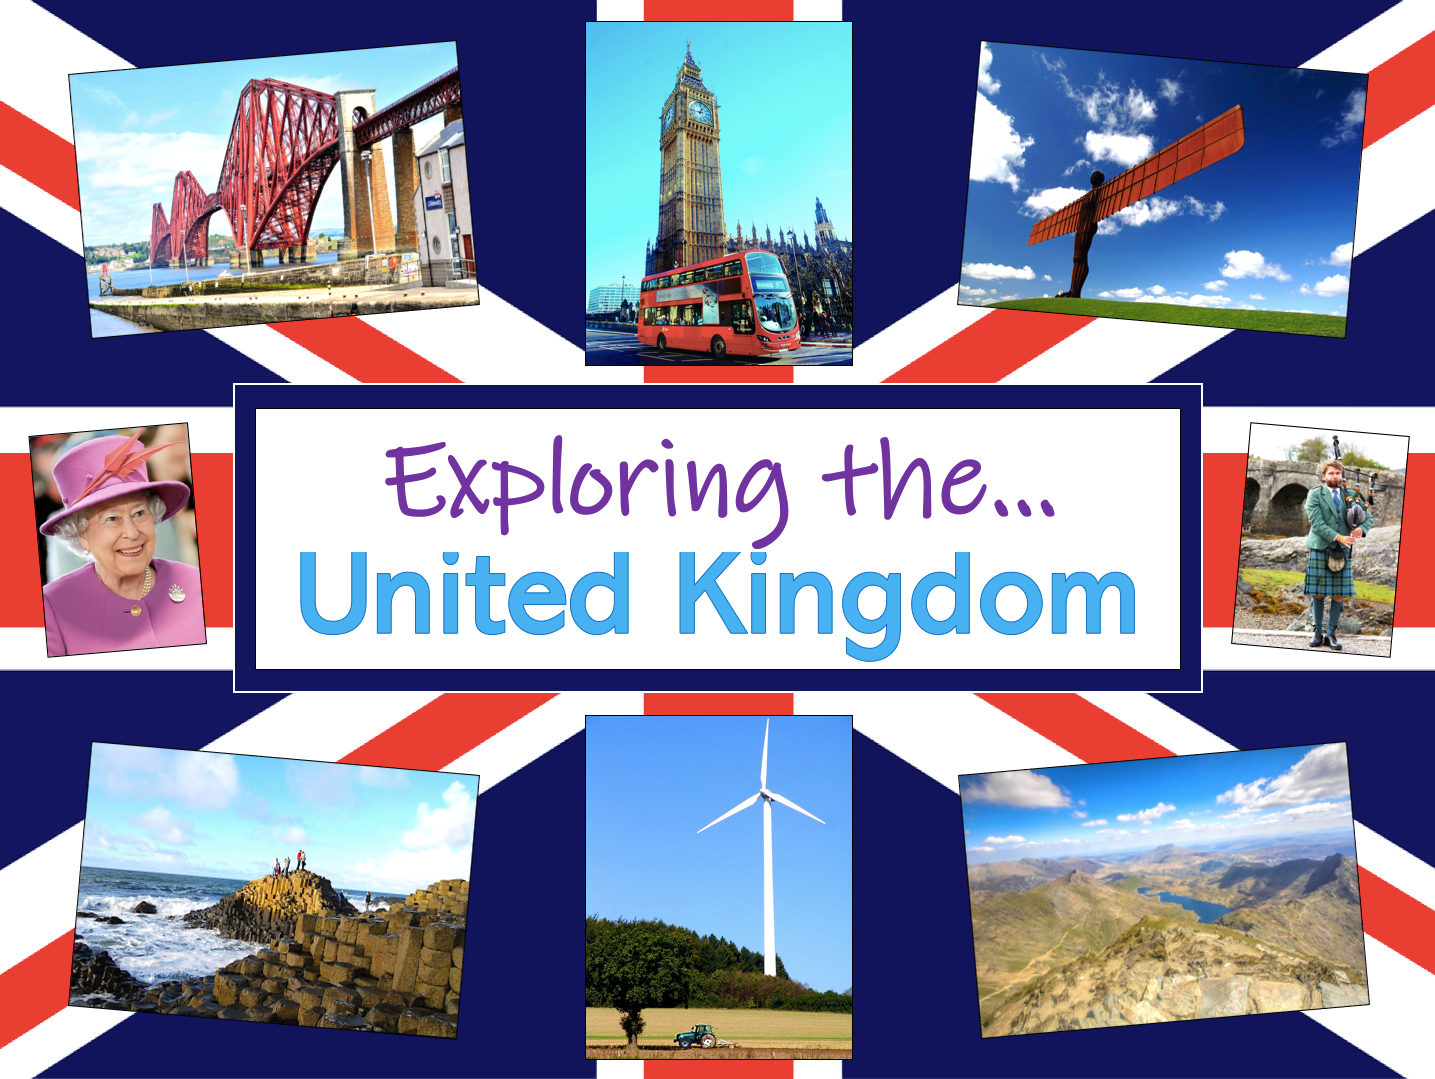 Exploring the United Kingdom